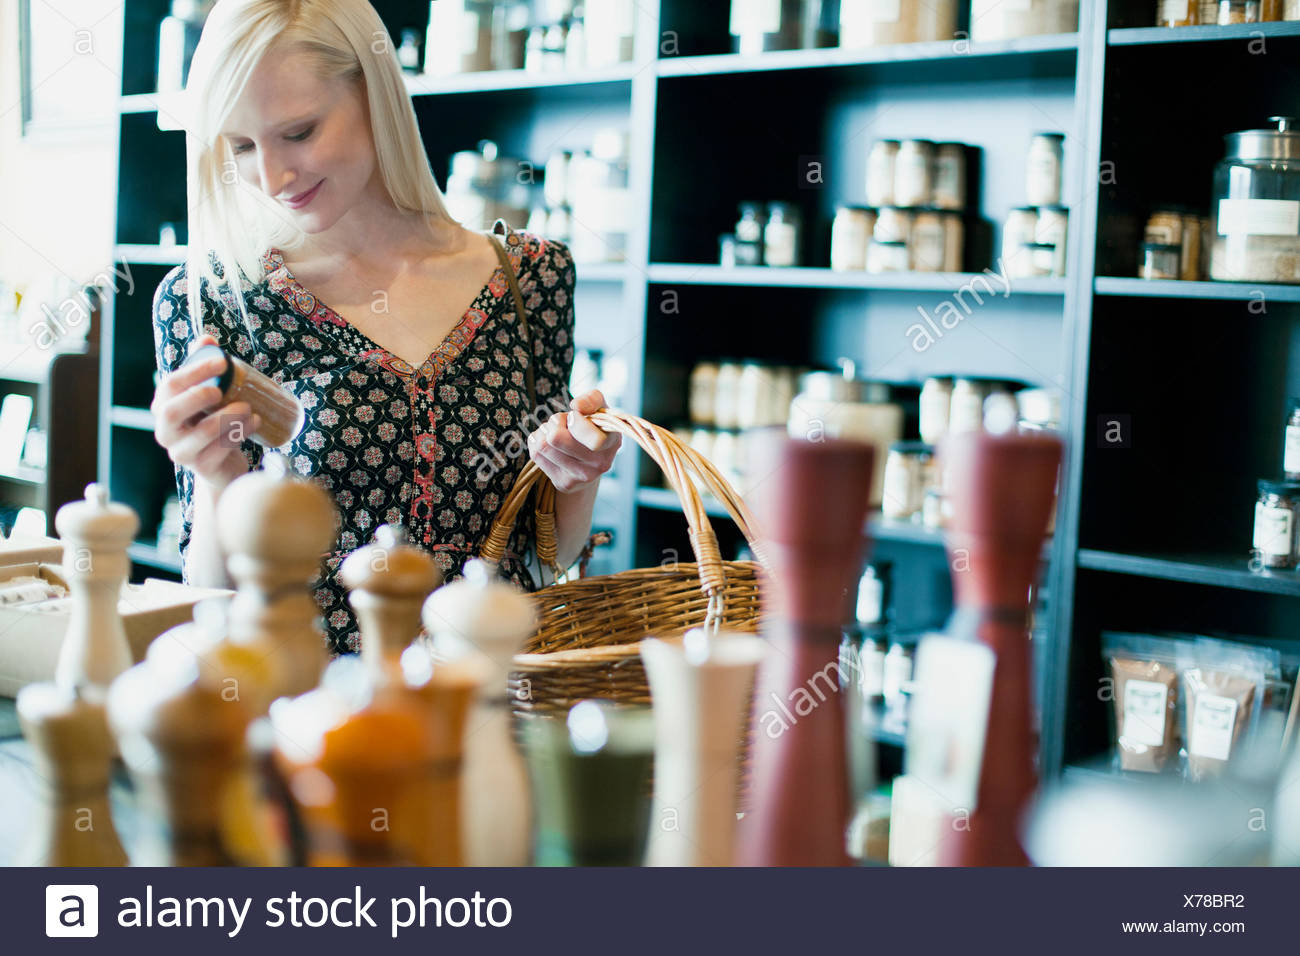 customer browsing in retail spice store - Stock Image